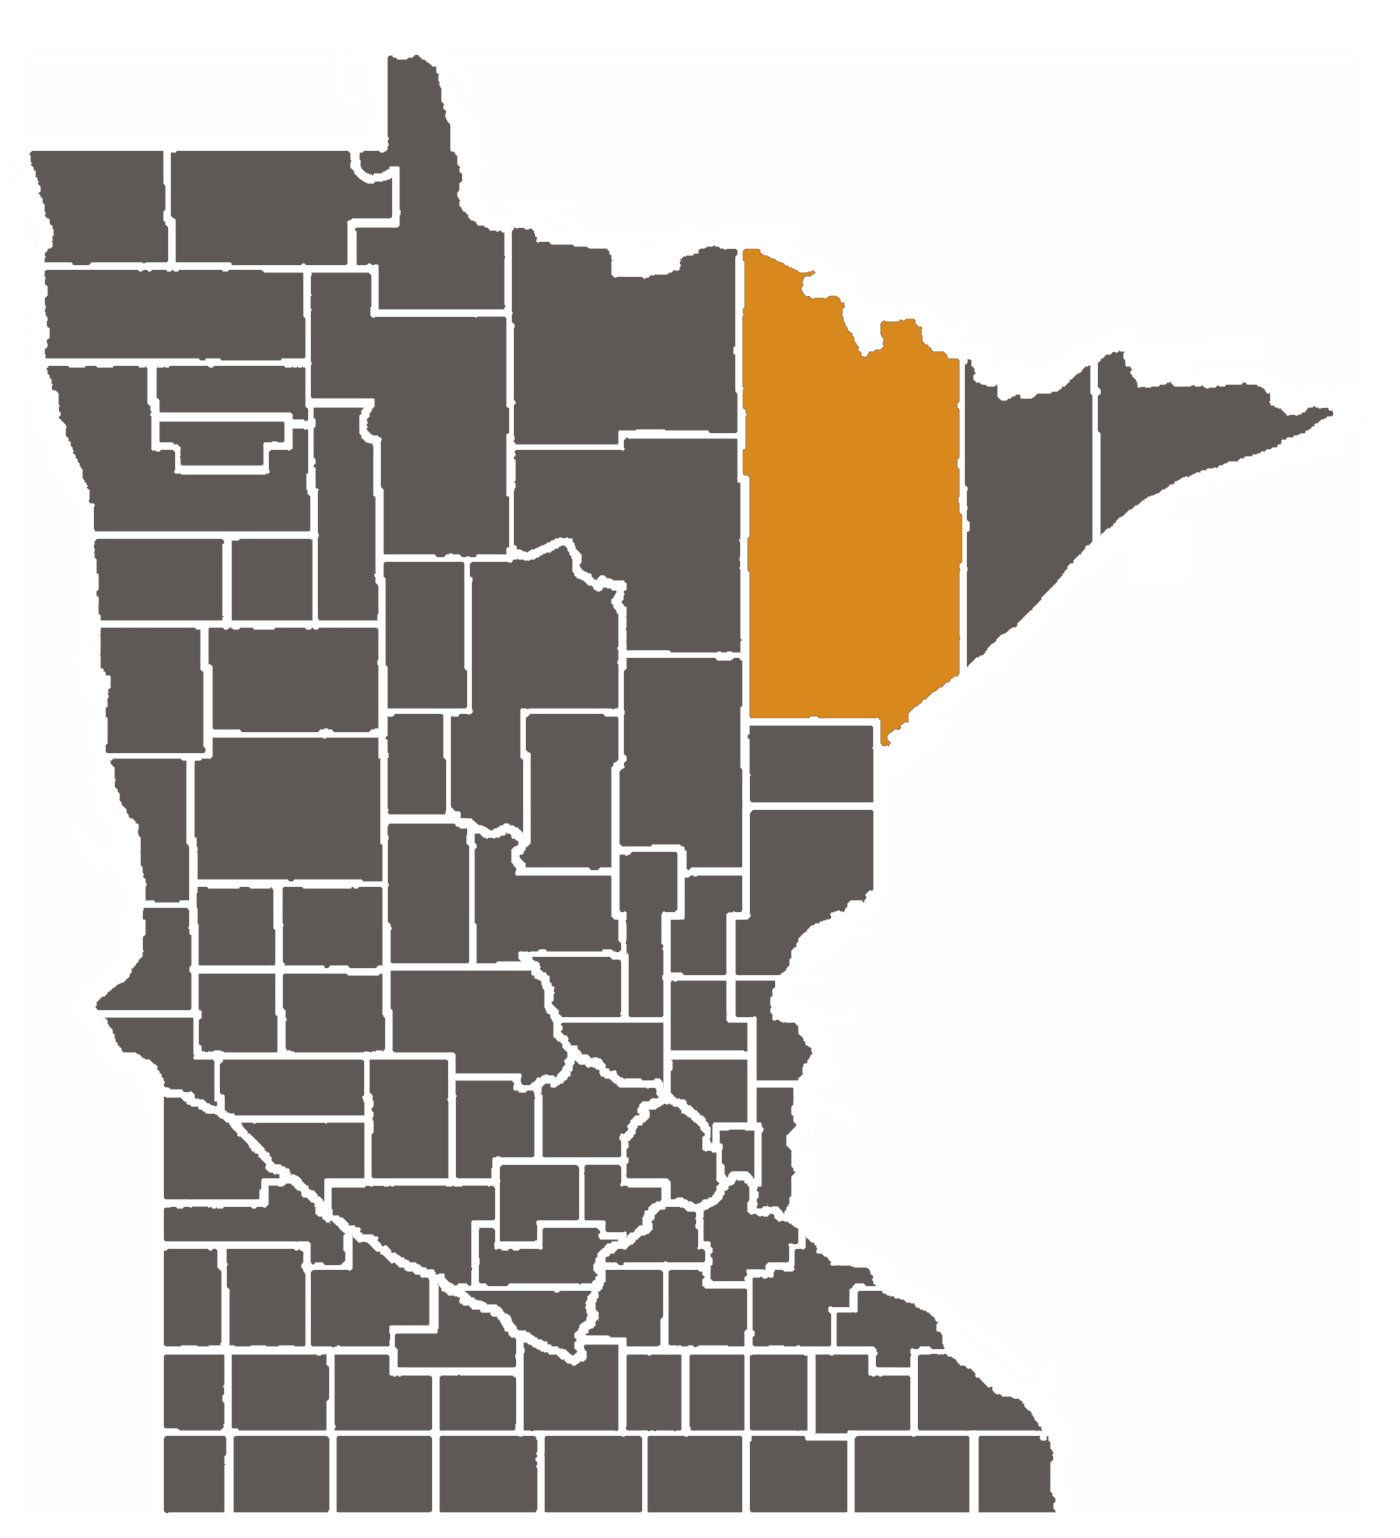 Minnesota Judicial Branch - St. Louis County District Court intended for St. Louis County Court Mn Schedule